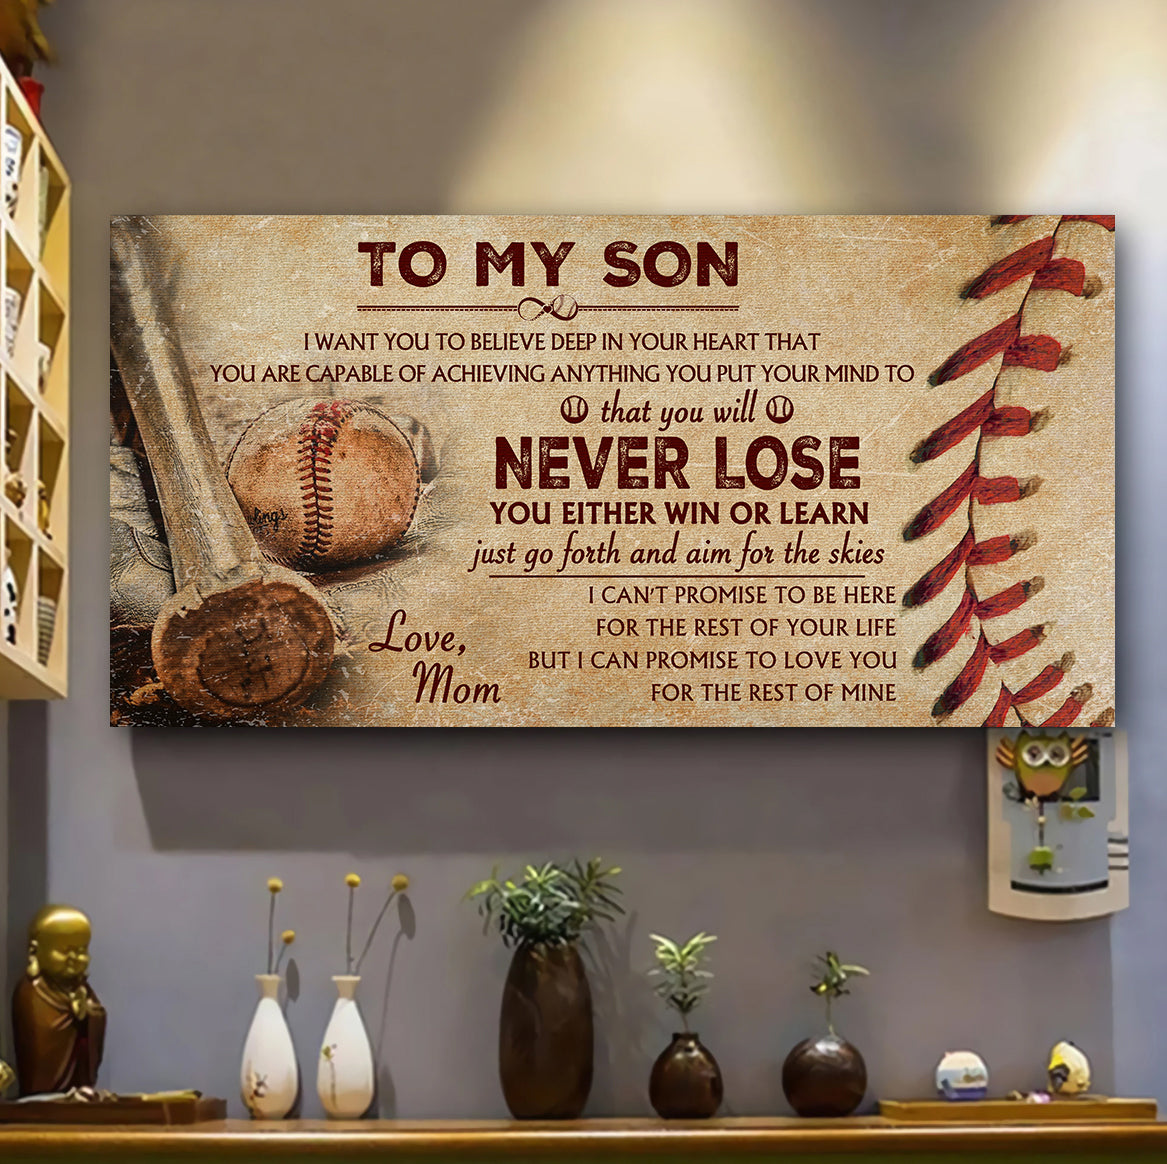 (LP321) CUSTOMIZABLE BASEBALL CANVAS FULL- MOM TO SON - NEVER LOSE - FREE SHIPPING ON ORDERS OVER $75